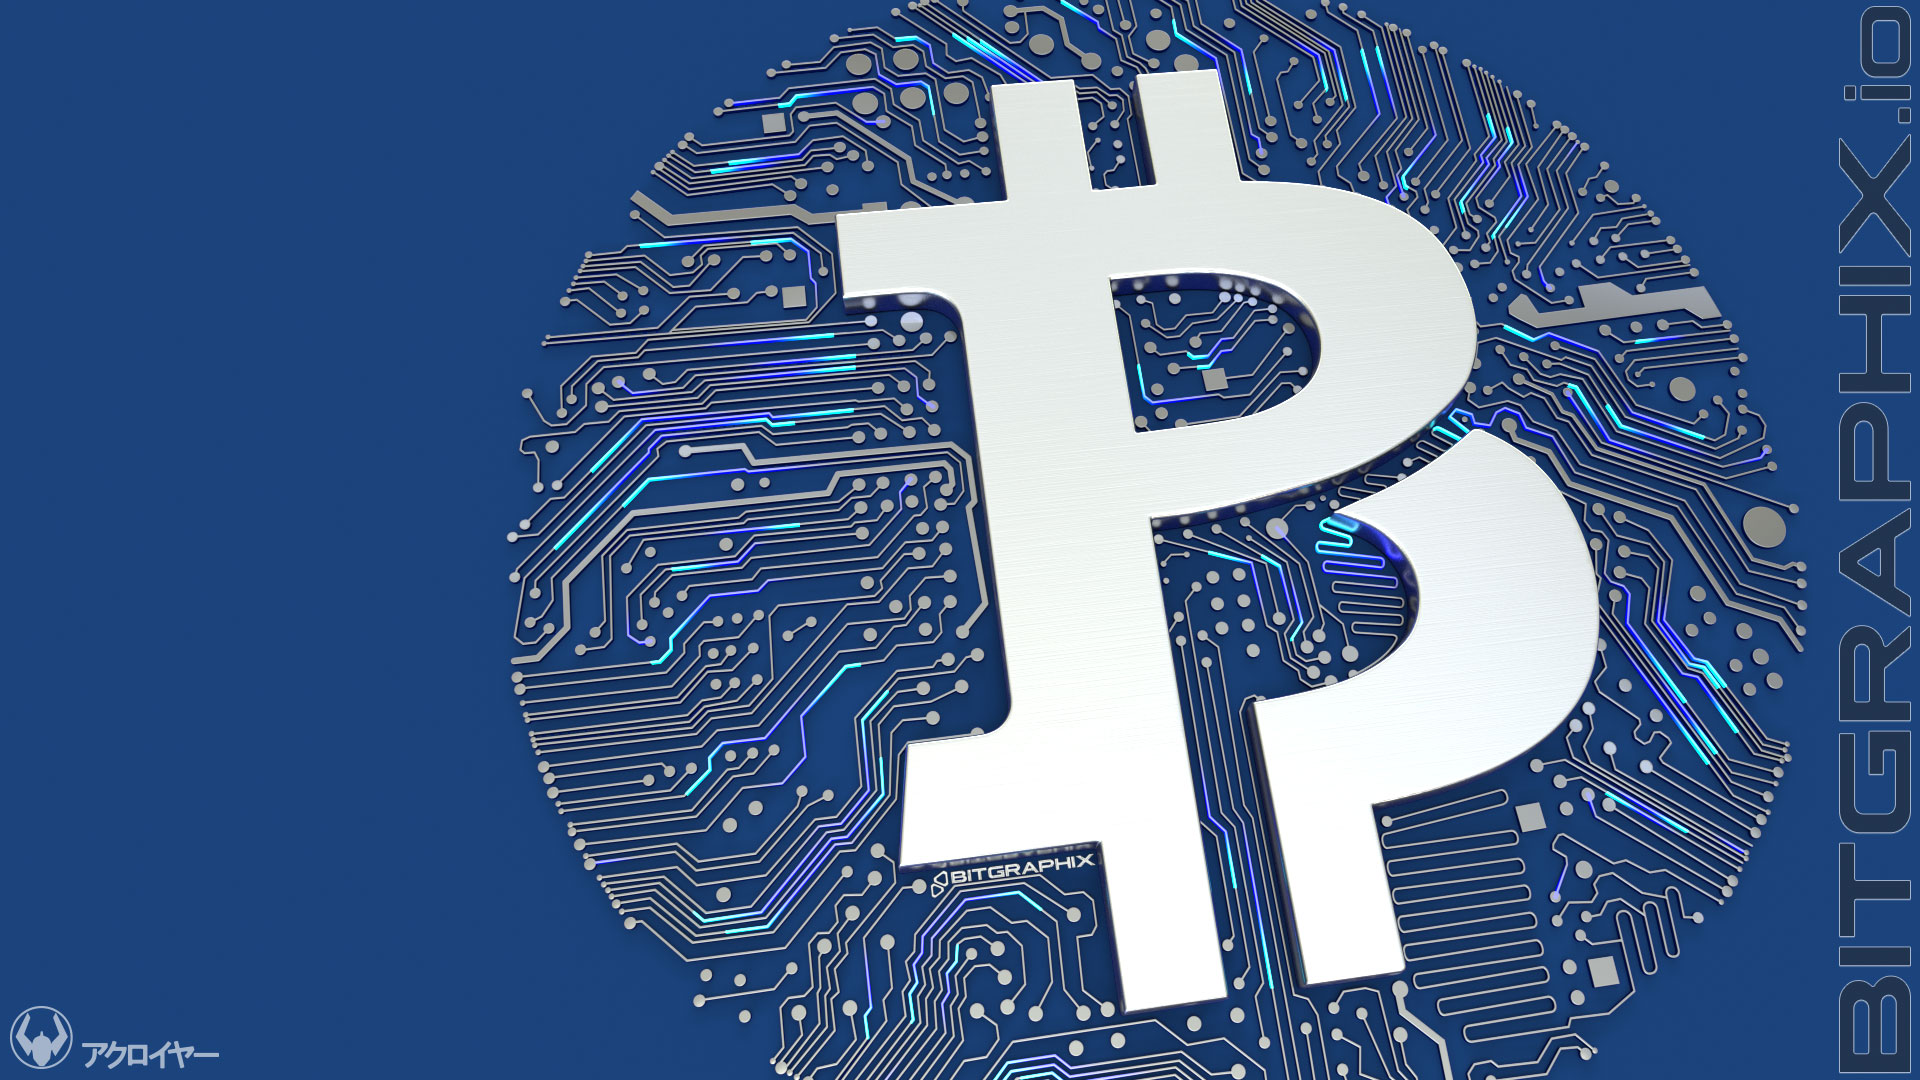 Bitgraphix-BTCP-logo-circuits-redshift-render-on-blue-signature_C